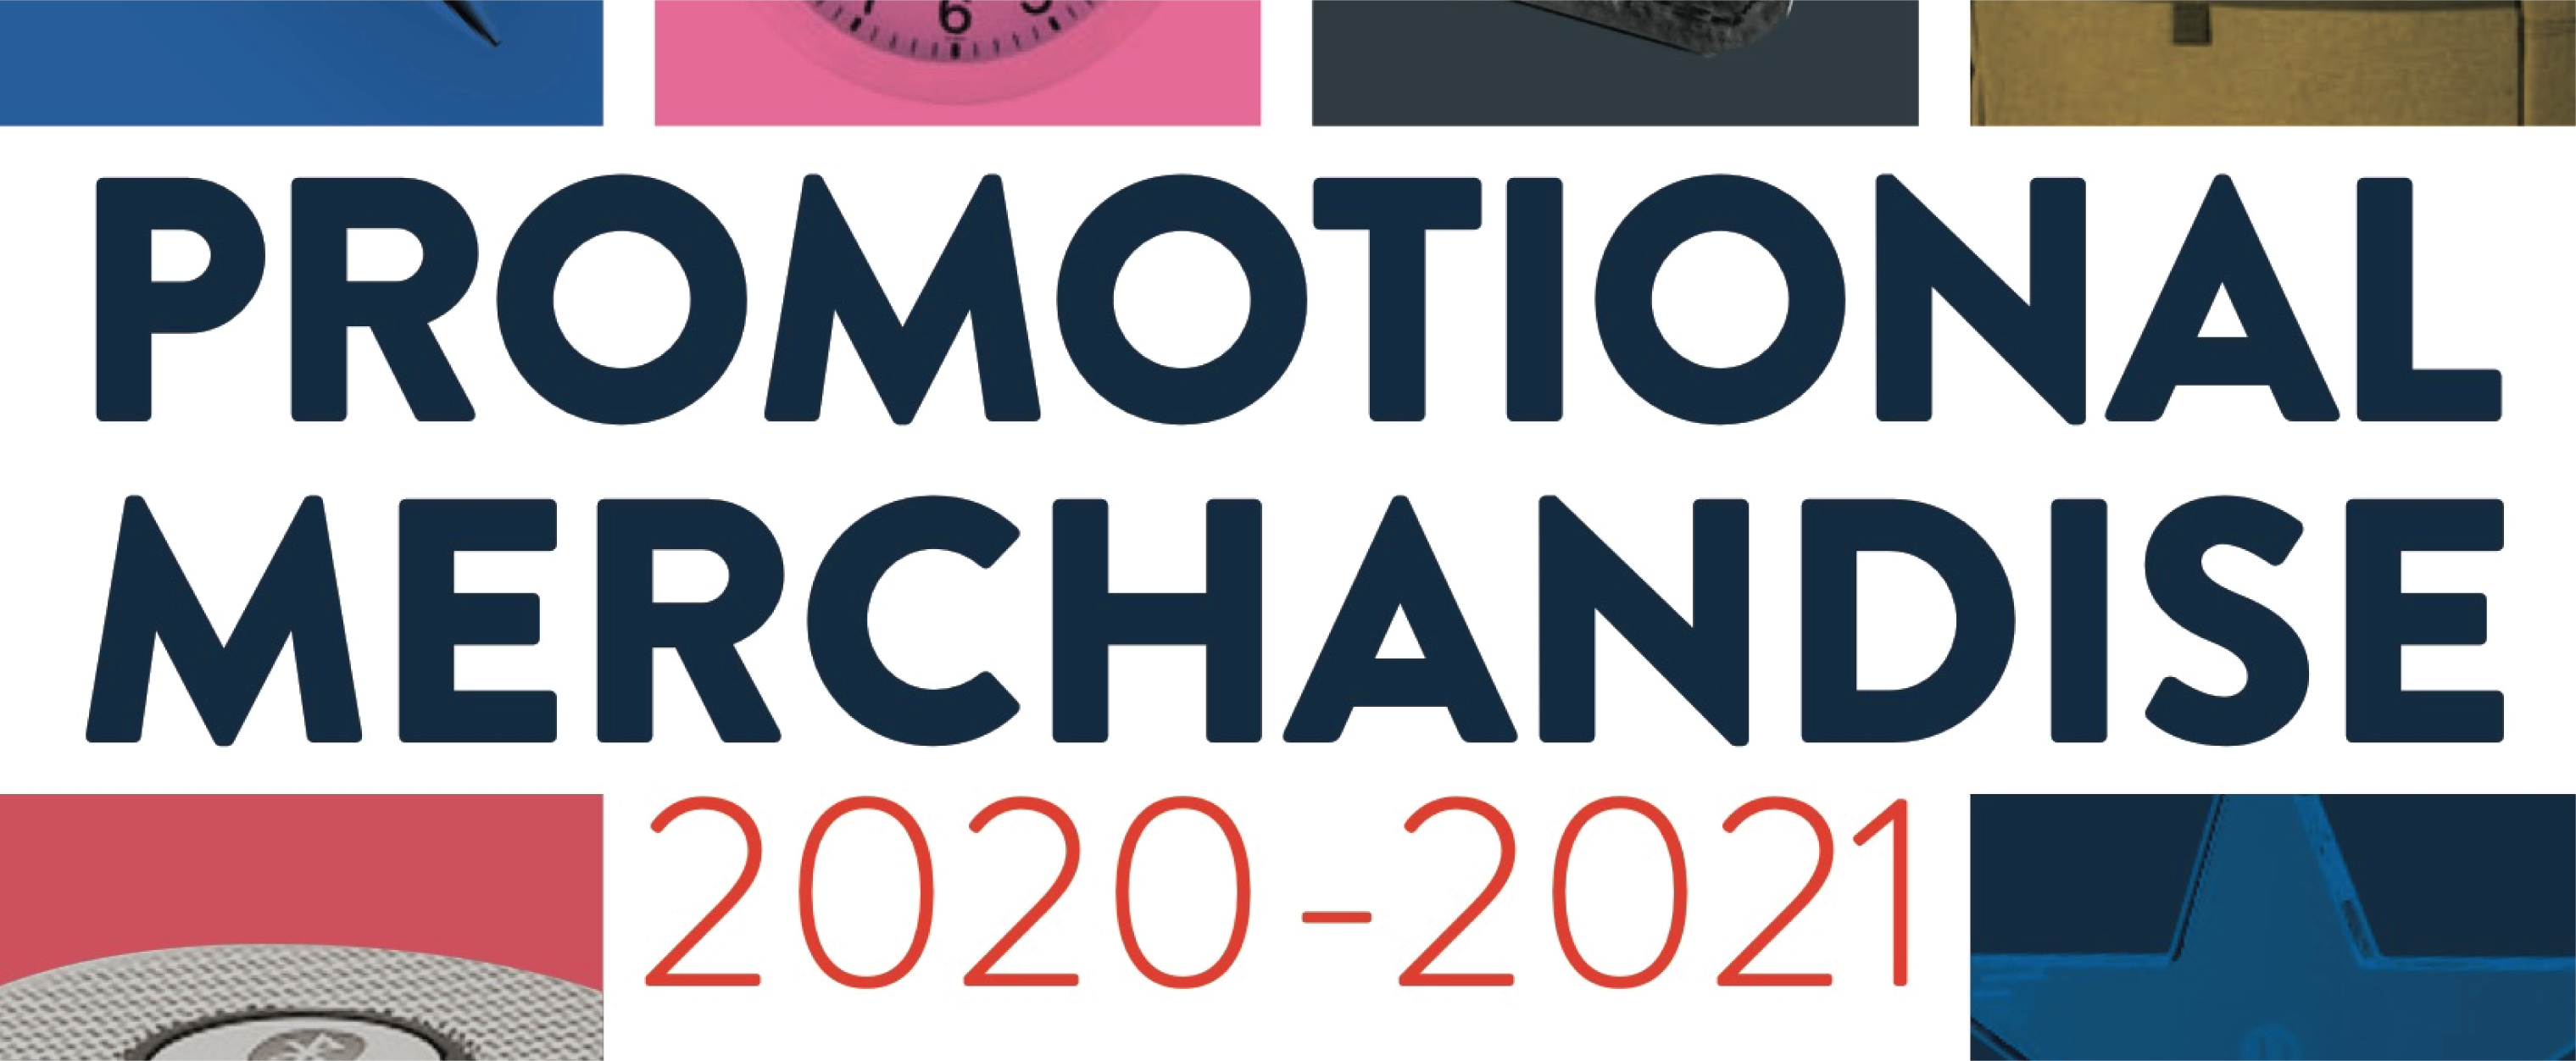 http://artmachinegraphics.co.uk/wpress/wp-content/uploads/2020/10/Slider-Artmachine-Promotionals-Merch-20-21.png